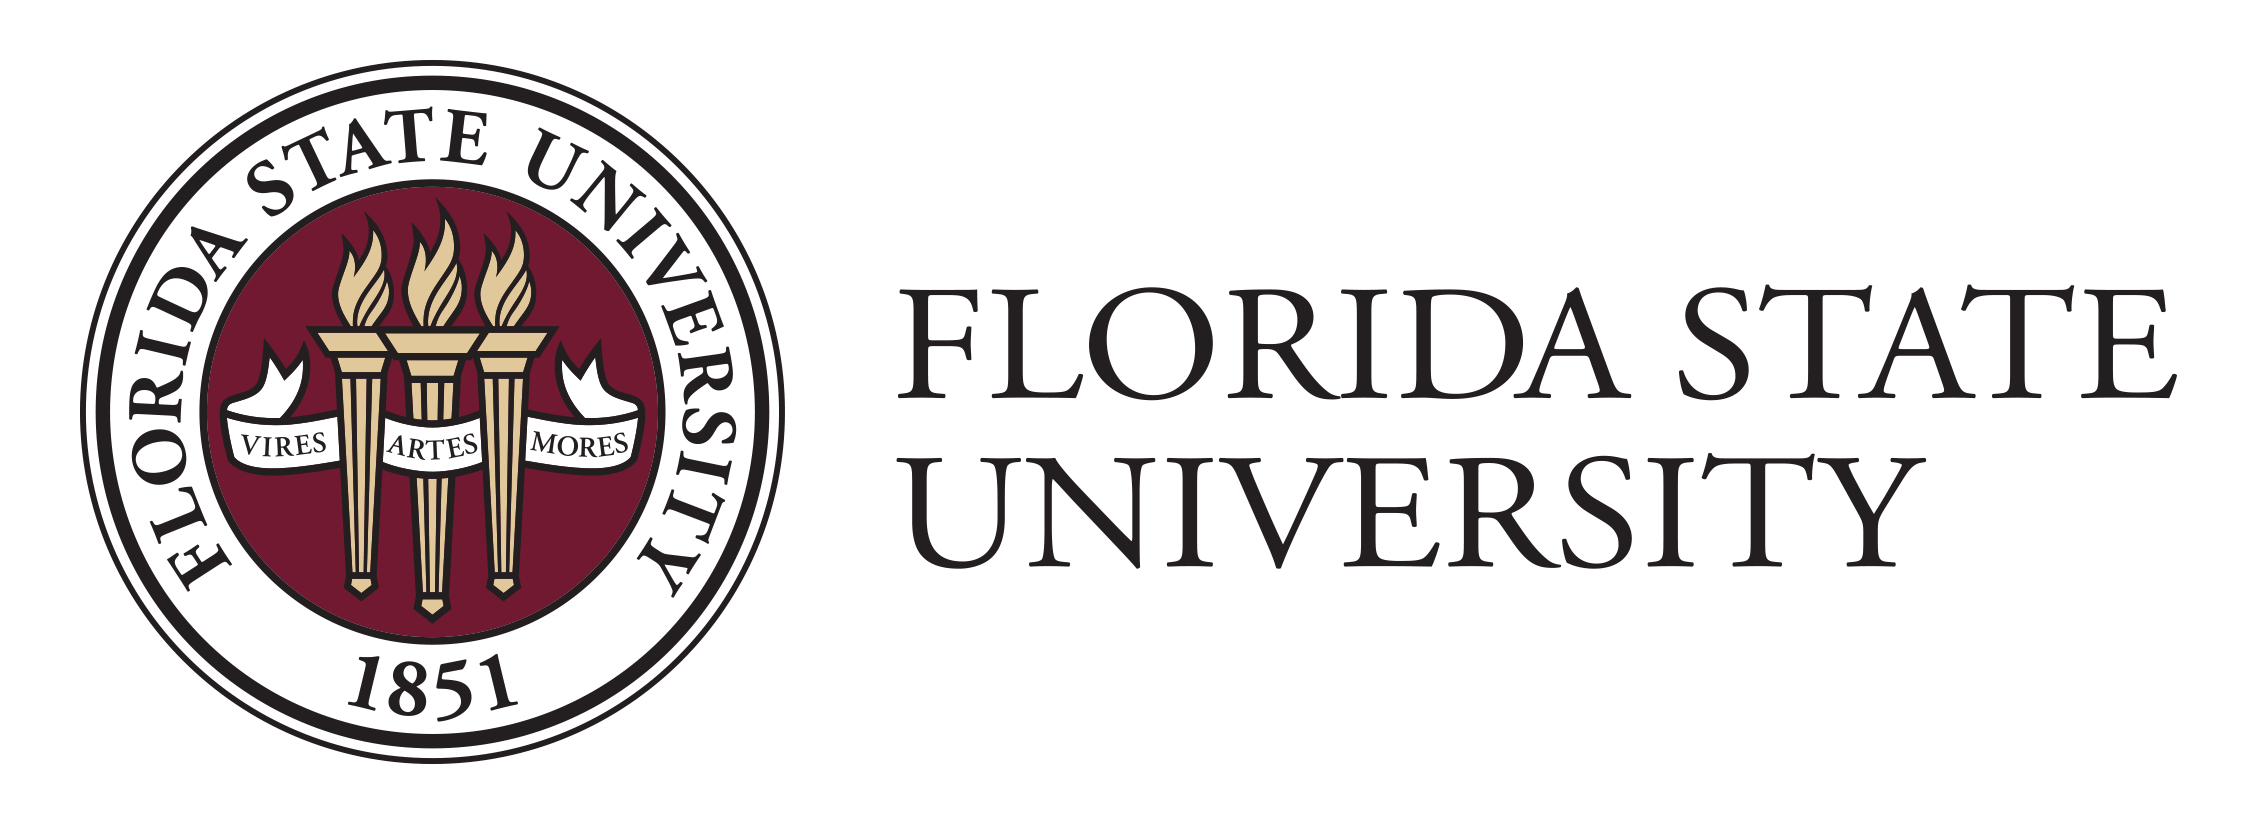 Florida state png. University college of business